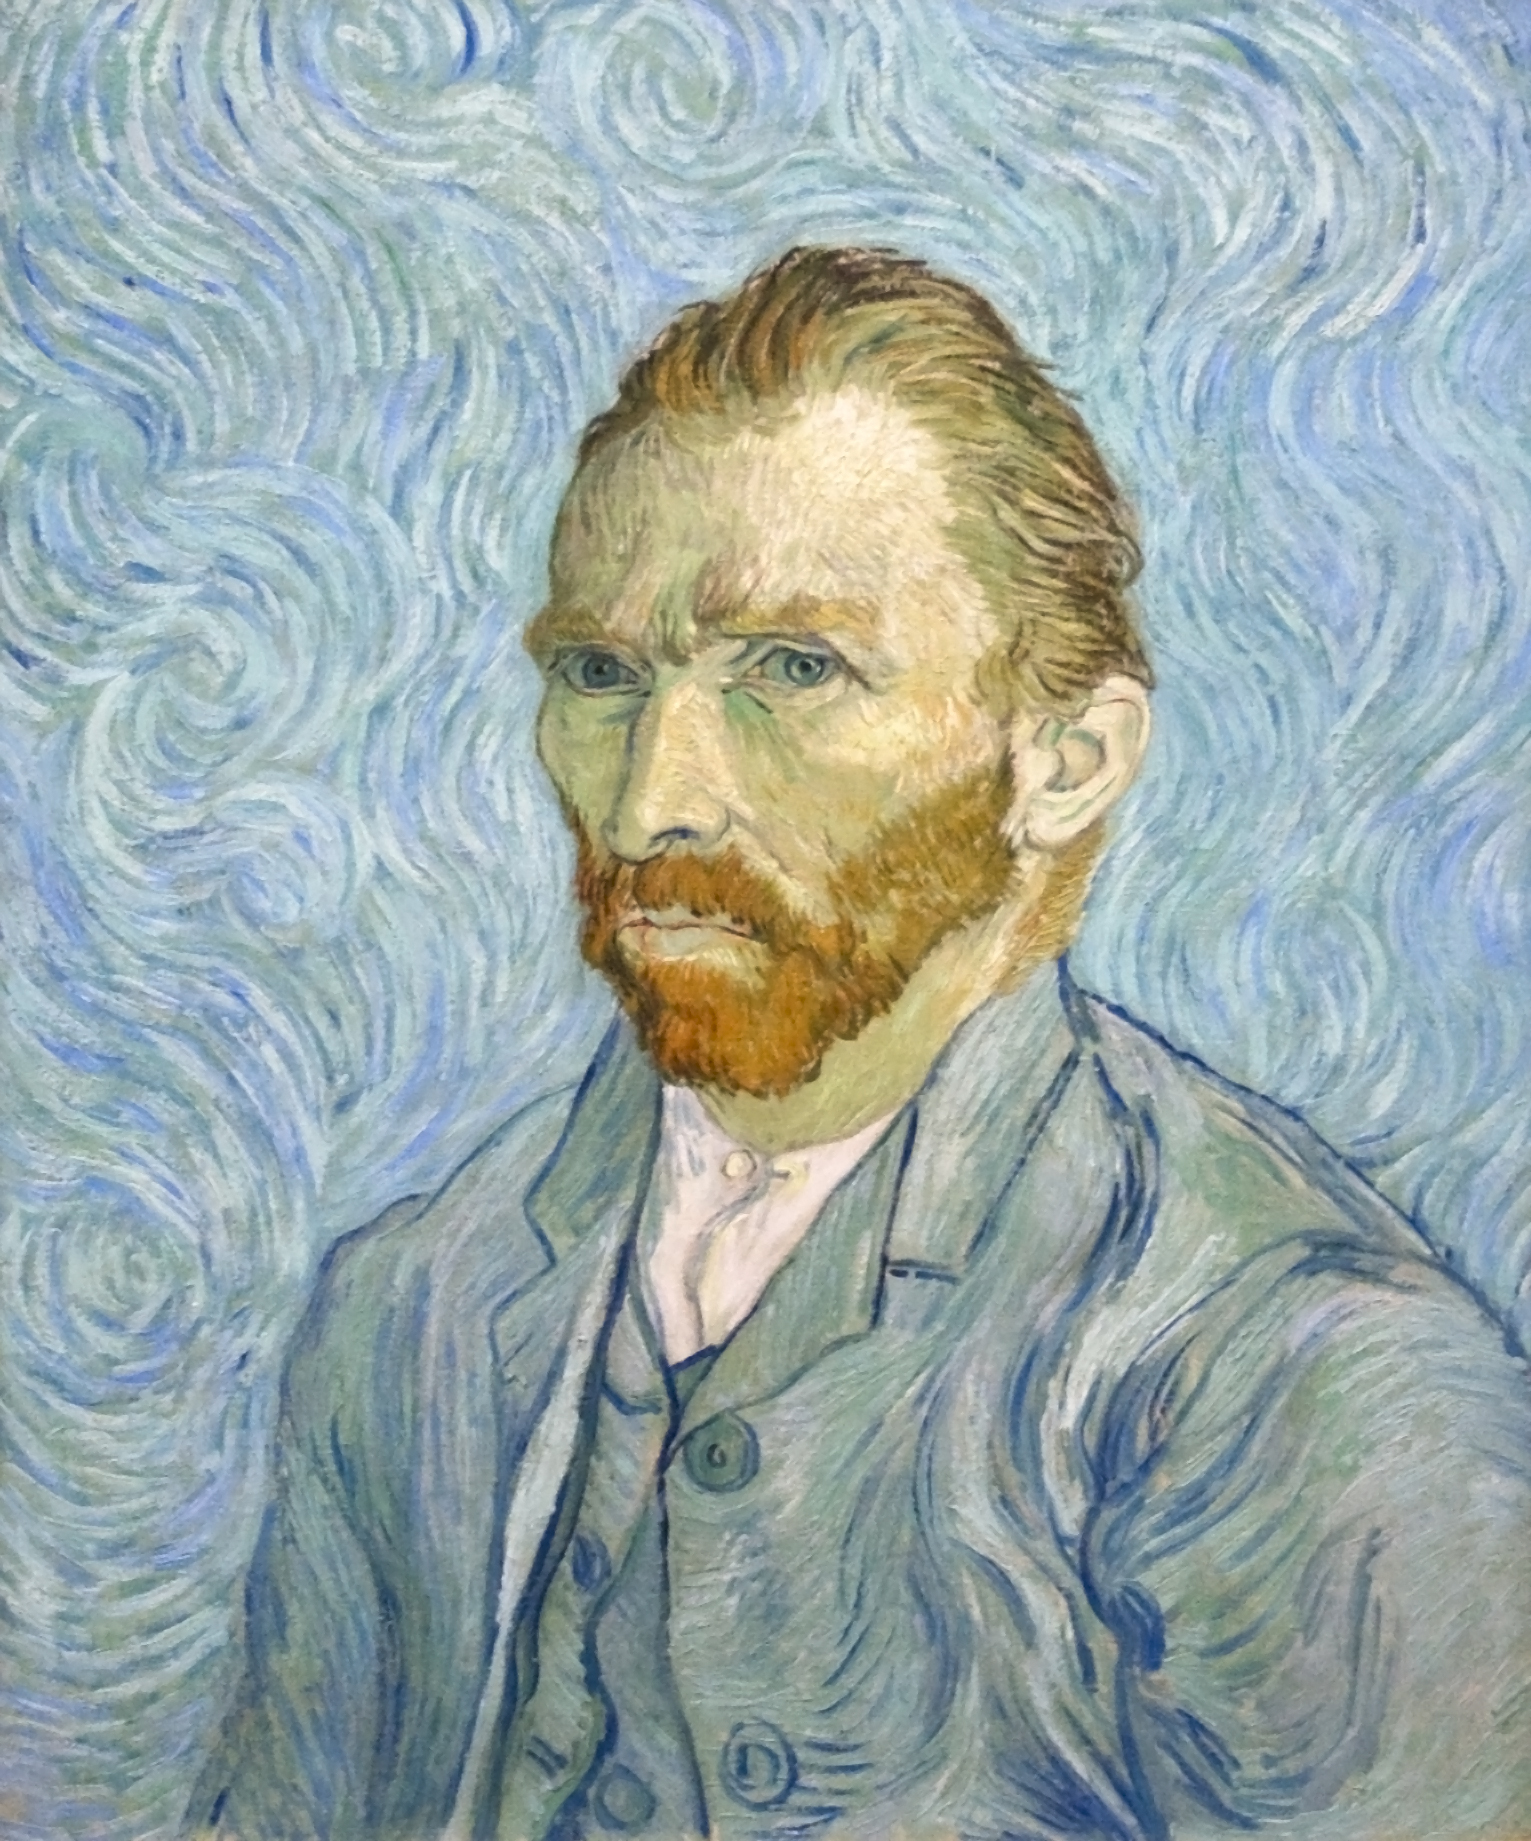 File:Self-Portrait (Van Gogh September 1889).jpg ...